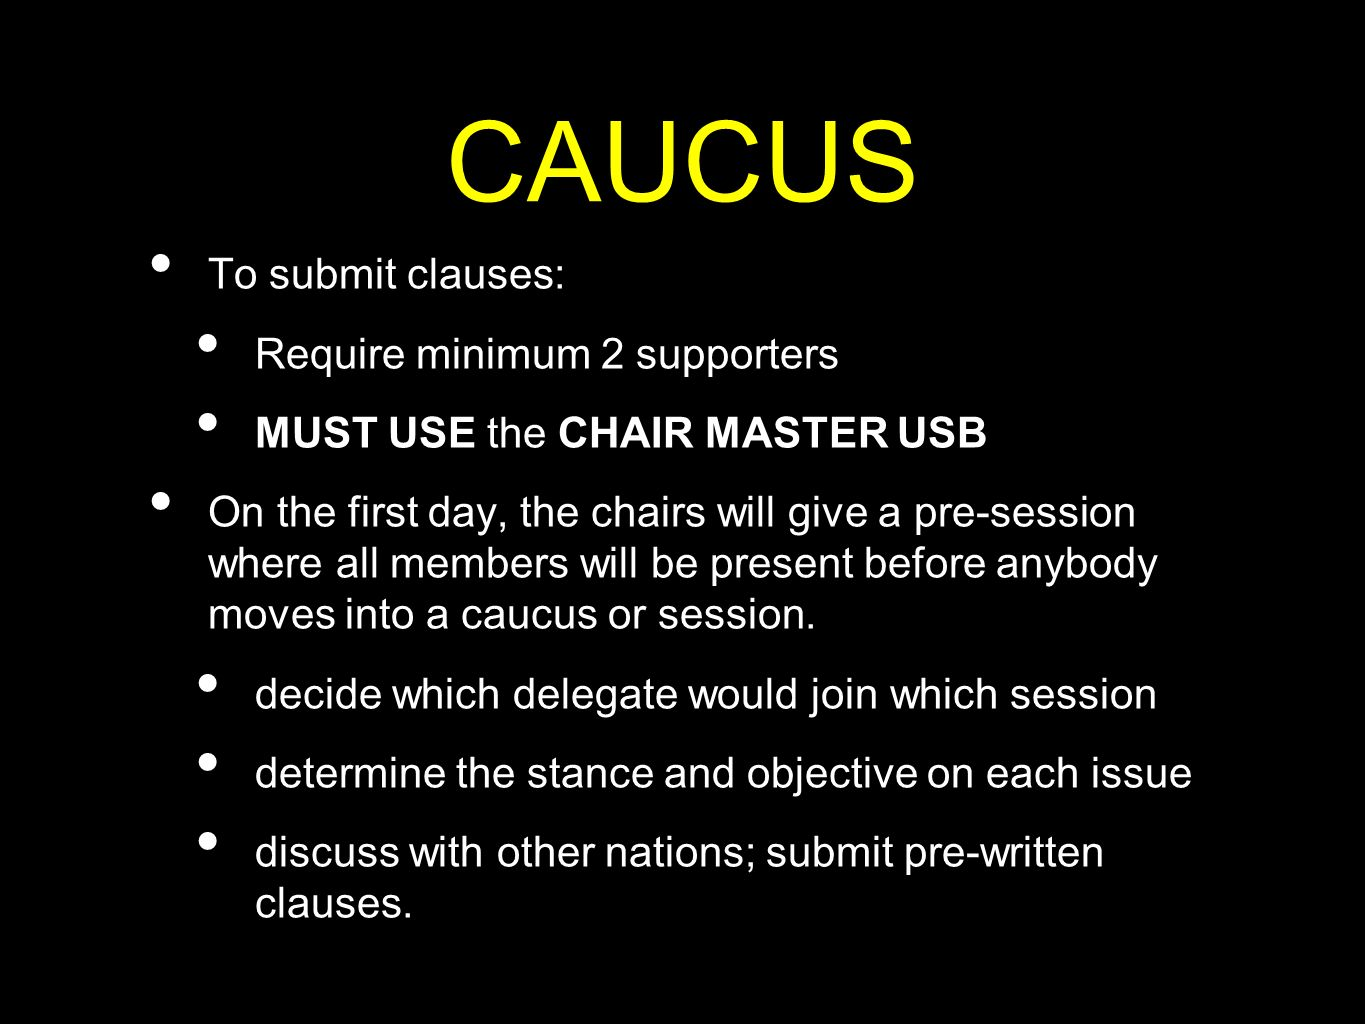 CAUCUS To submit clauses: Require minimum 2 supporters MUST USE the CHAIR MASTER USB On the first day, the chairs will give a pre-session where all me